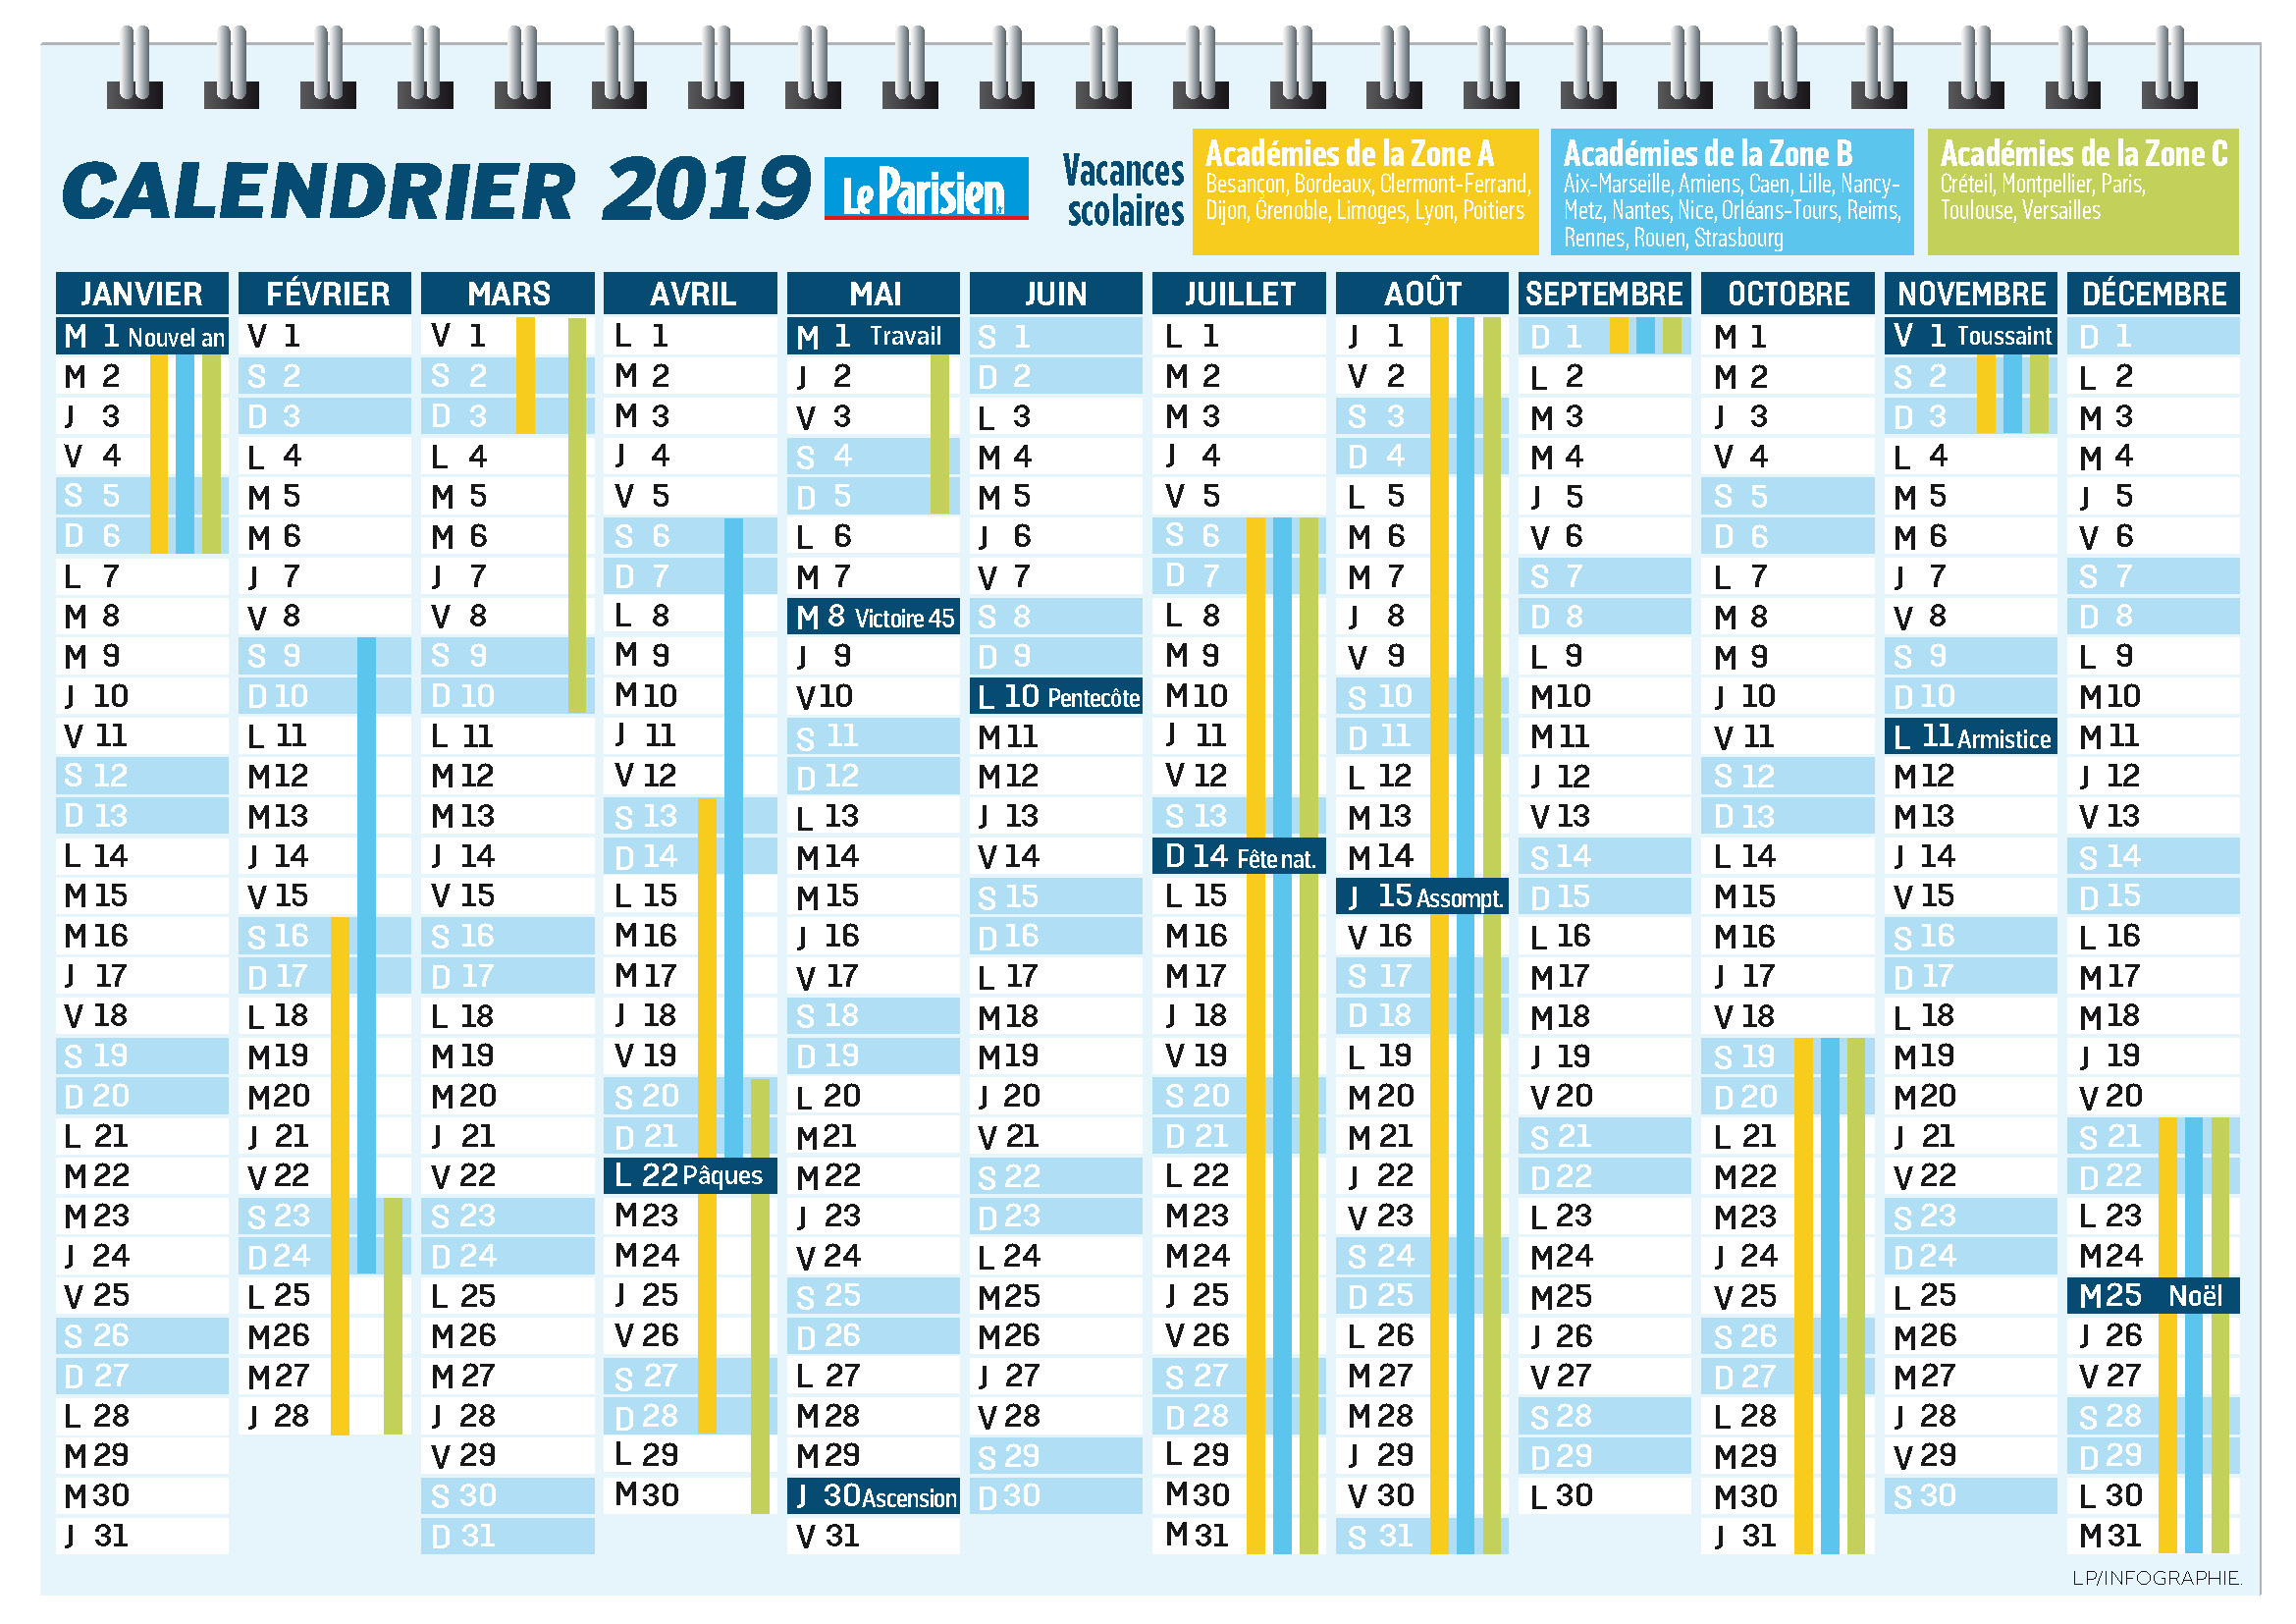 Sciences Po Calendrier Universitaire.Dates De La Rentree 2019 Et Des Vacances 2019 2020